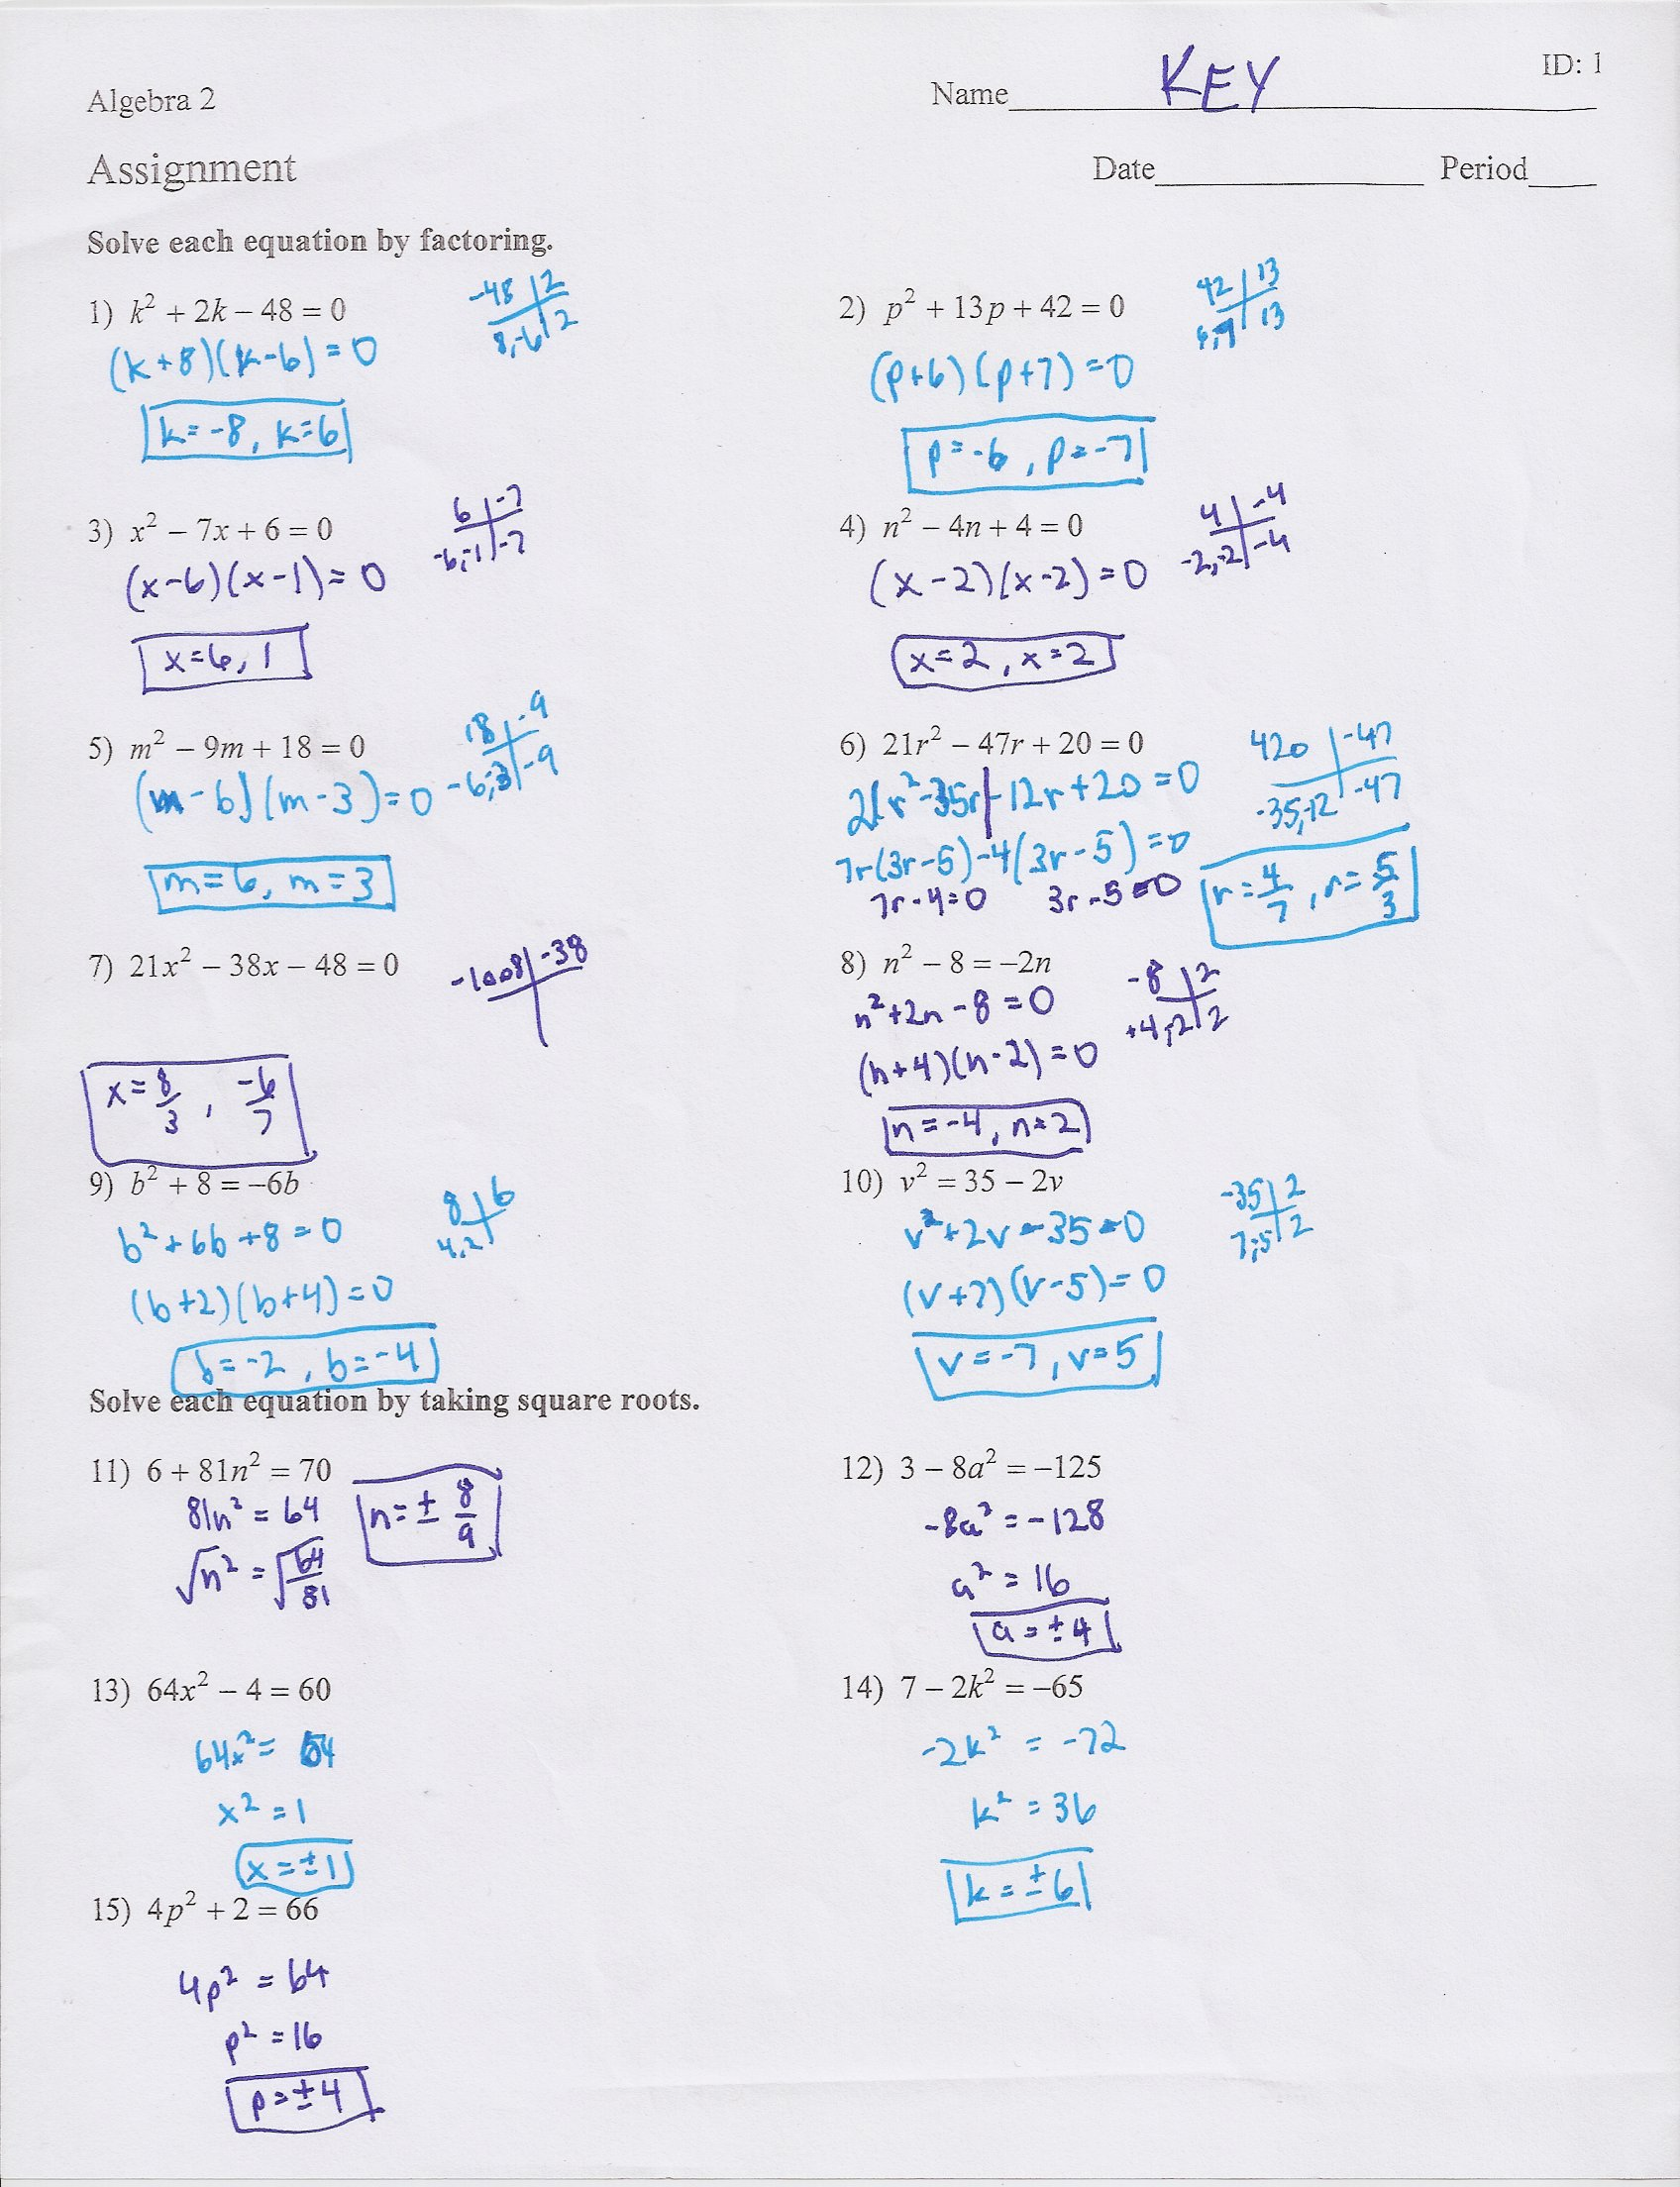 Solving Quadratic Equations With Square Roots Worksheet Answers